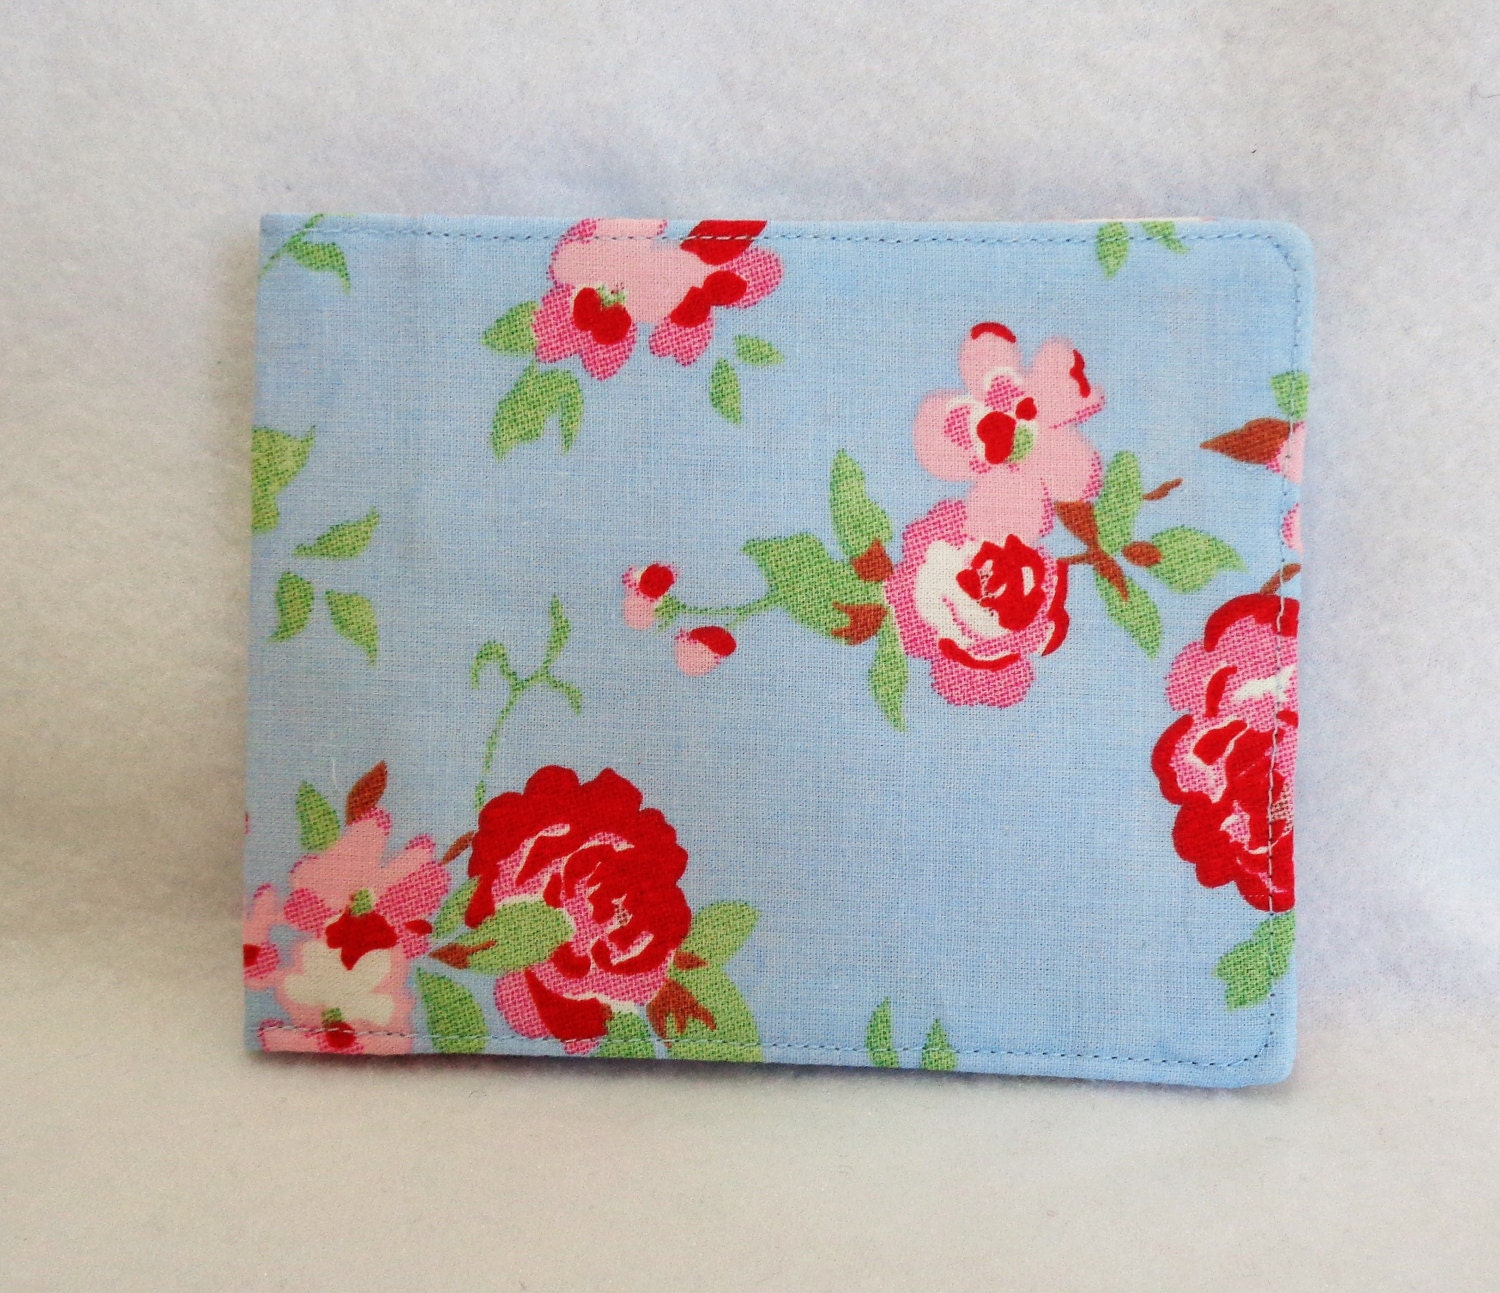 Cath Kidston Fabric Design Tampon Case  Pantiliner Holder  Tampon Purse  Pricacy Purse  Sanitary Bag  Gift for Mom  Gift for Mum